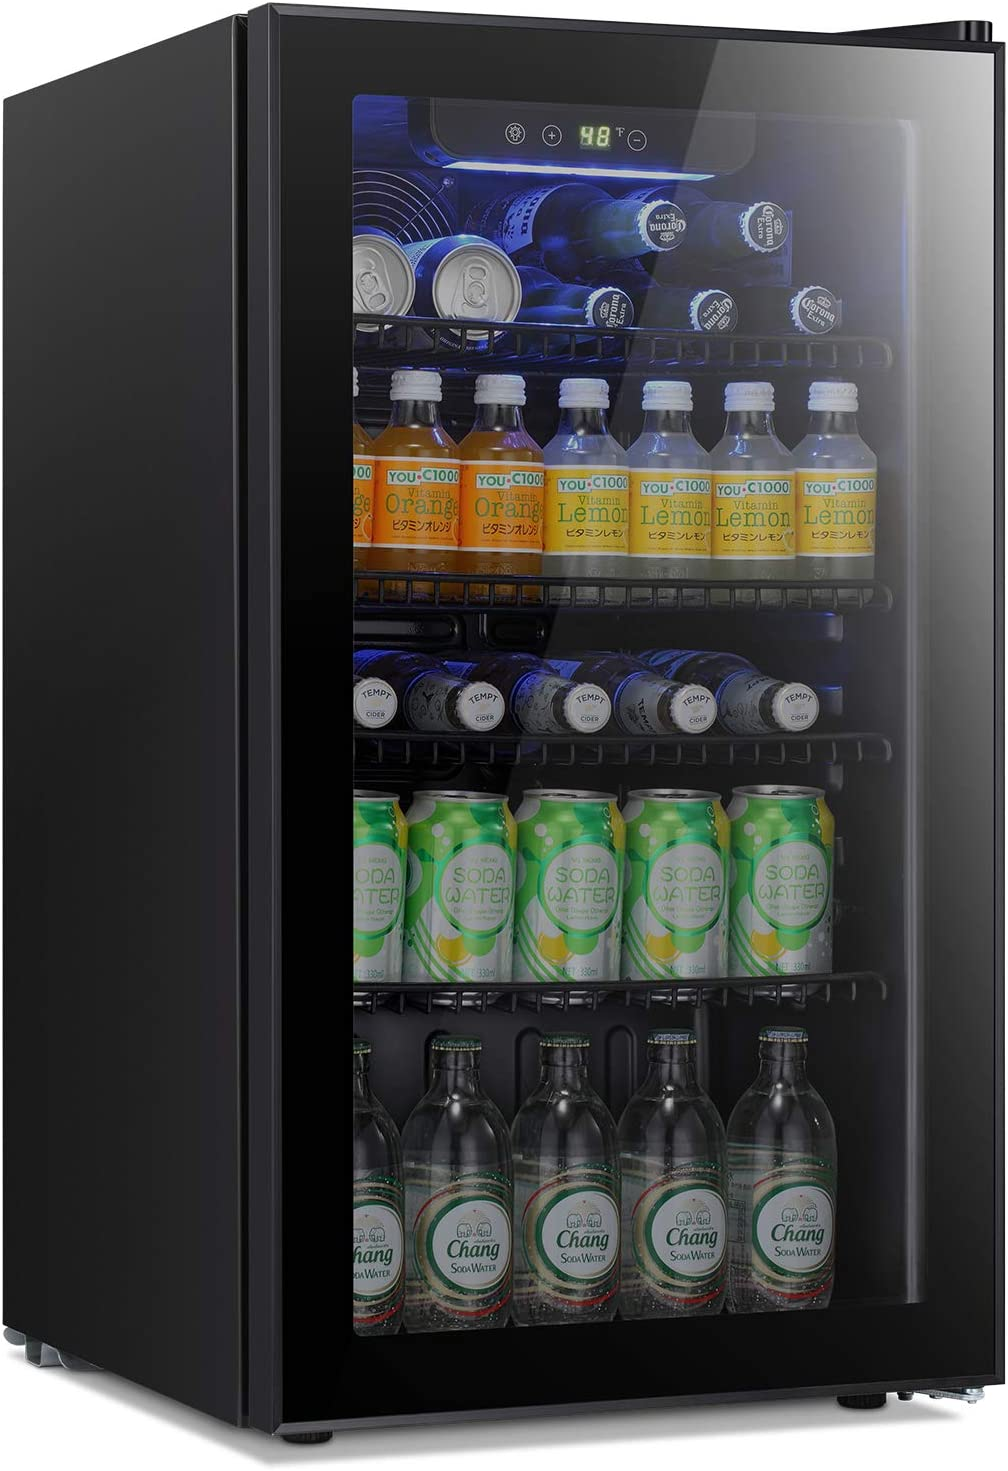 Antarctic Star Beverage Refrigerator Cooler - 120 Can Mini Fridge Glass Door for Soda Beer or Wine Small Drink Dispenser Clear Front for Home, Office or Bar,3.2cu.ft.